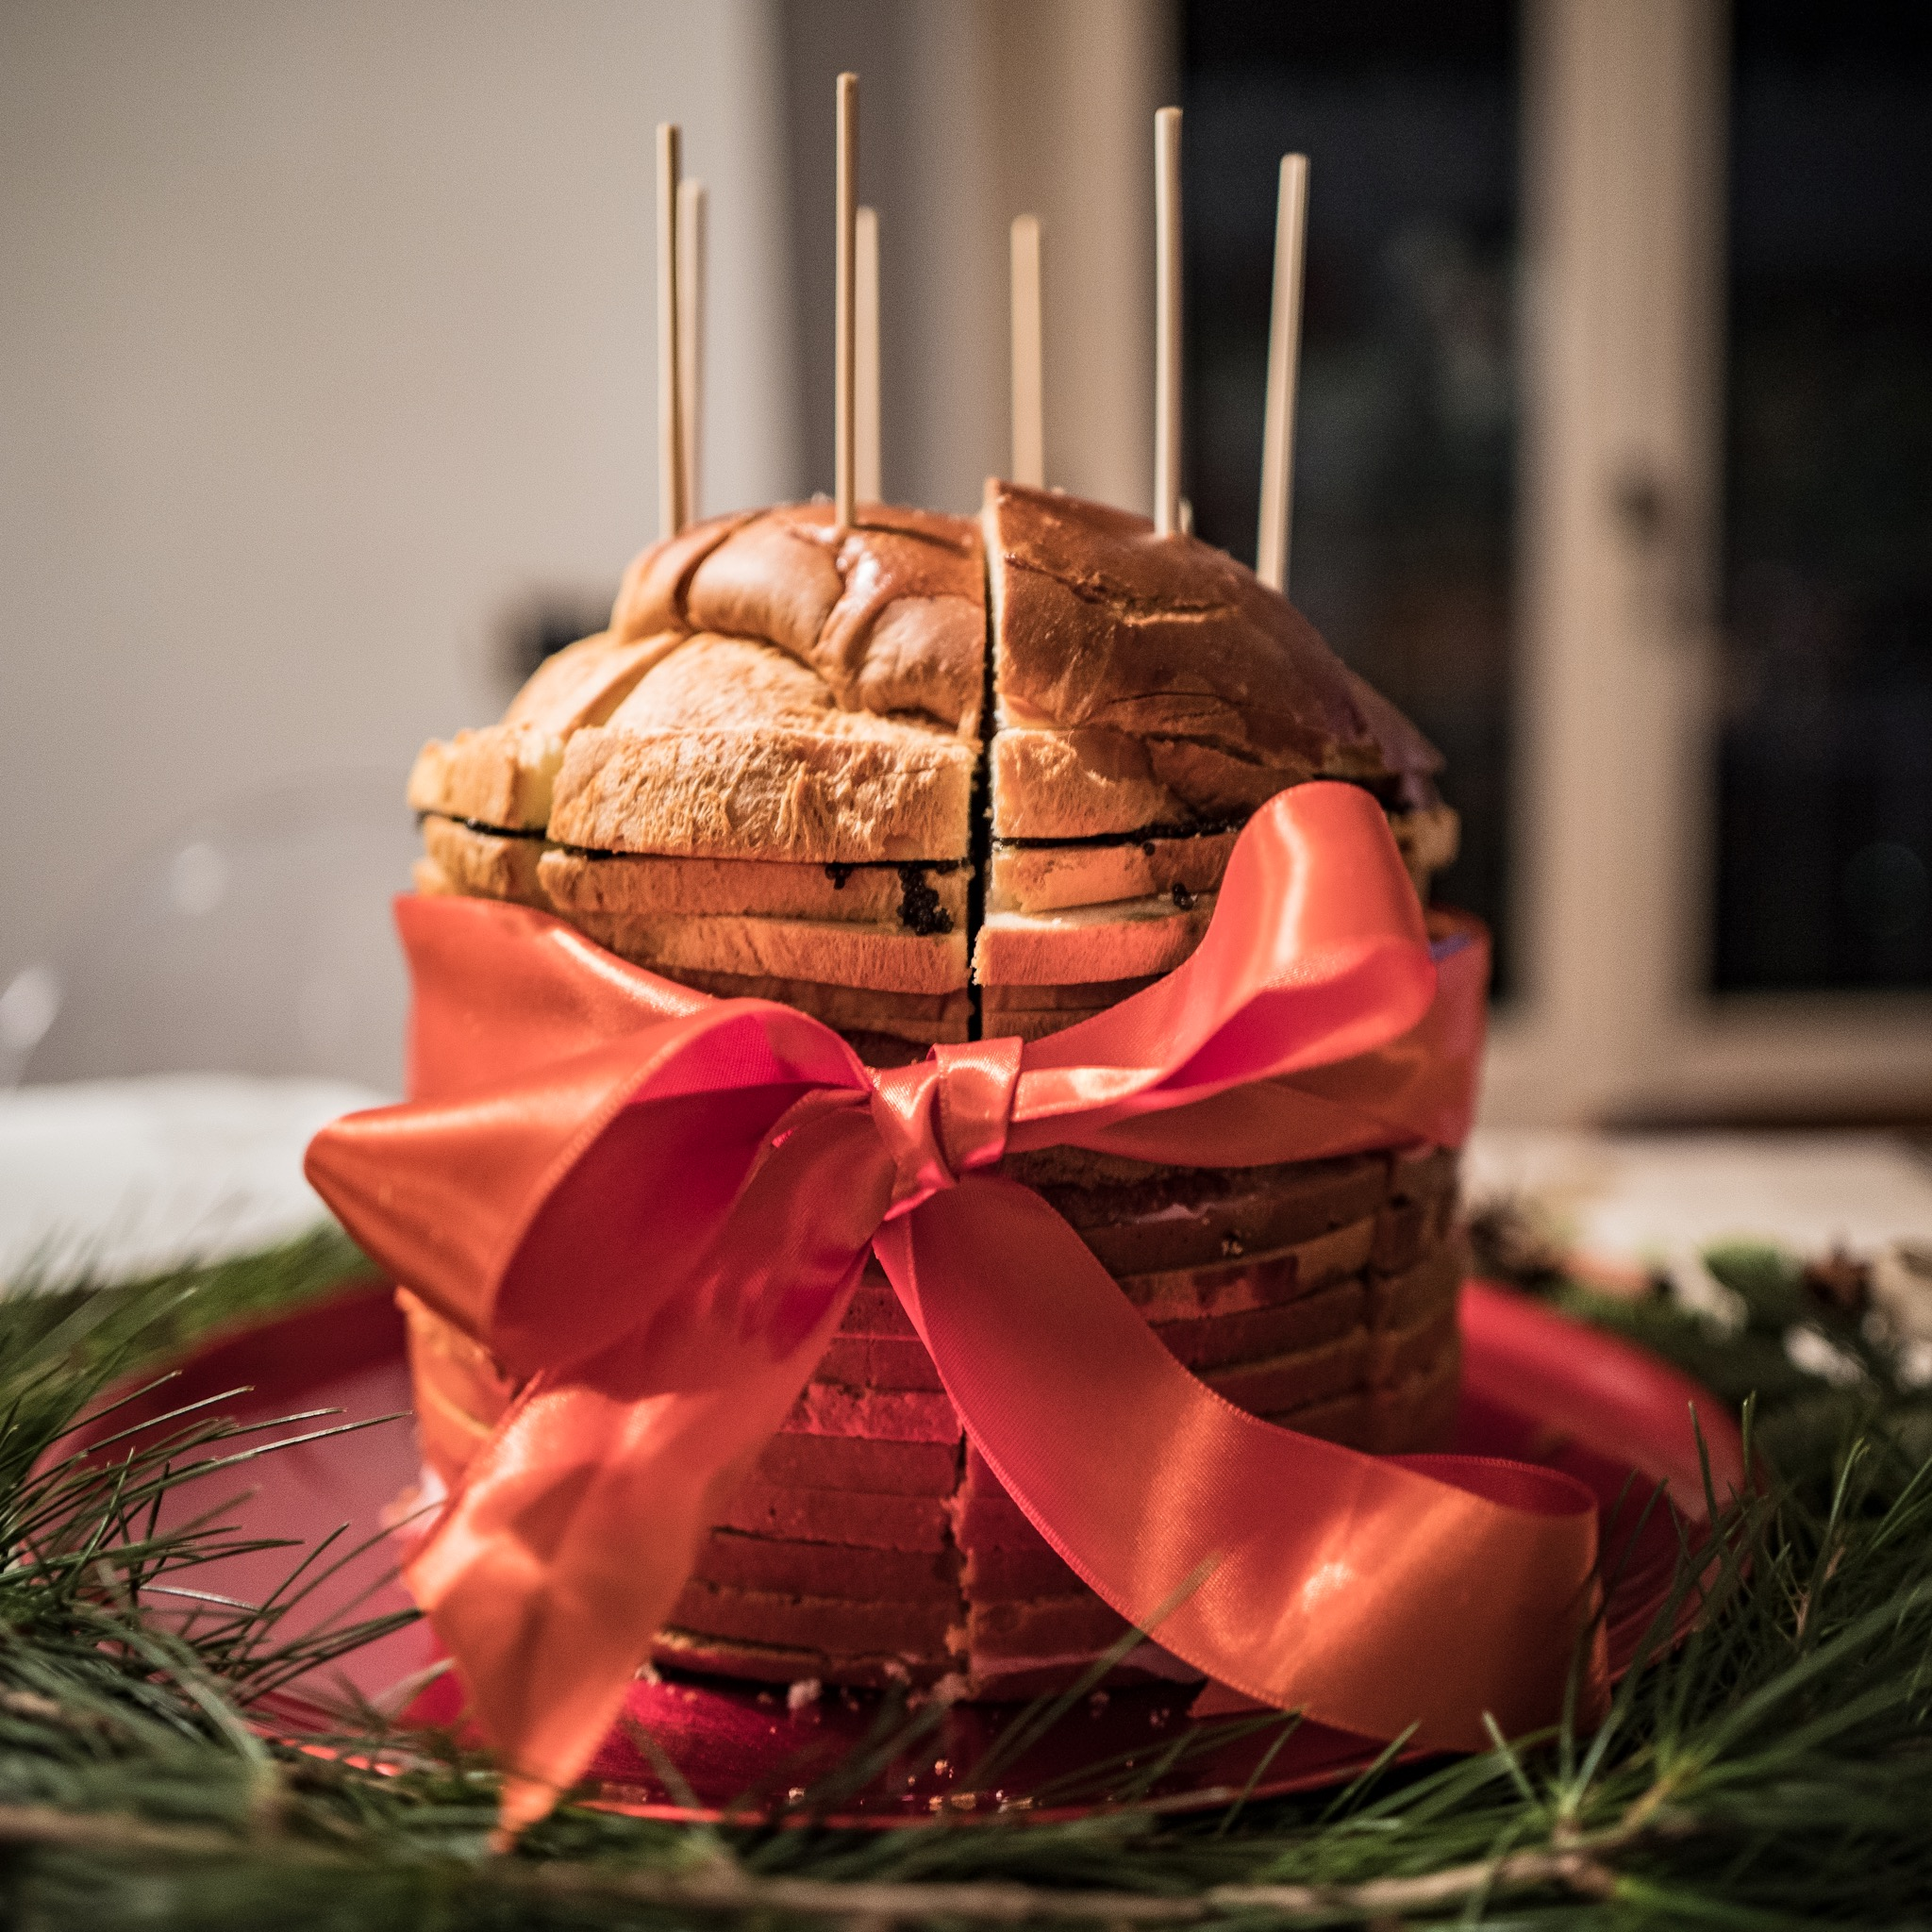 Spectacular Xmas tower with layers of salami, ham, speck and caviar sandwiches…